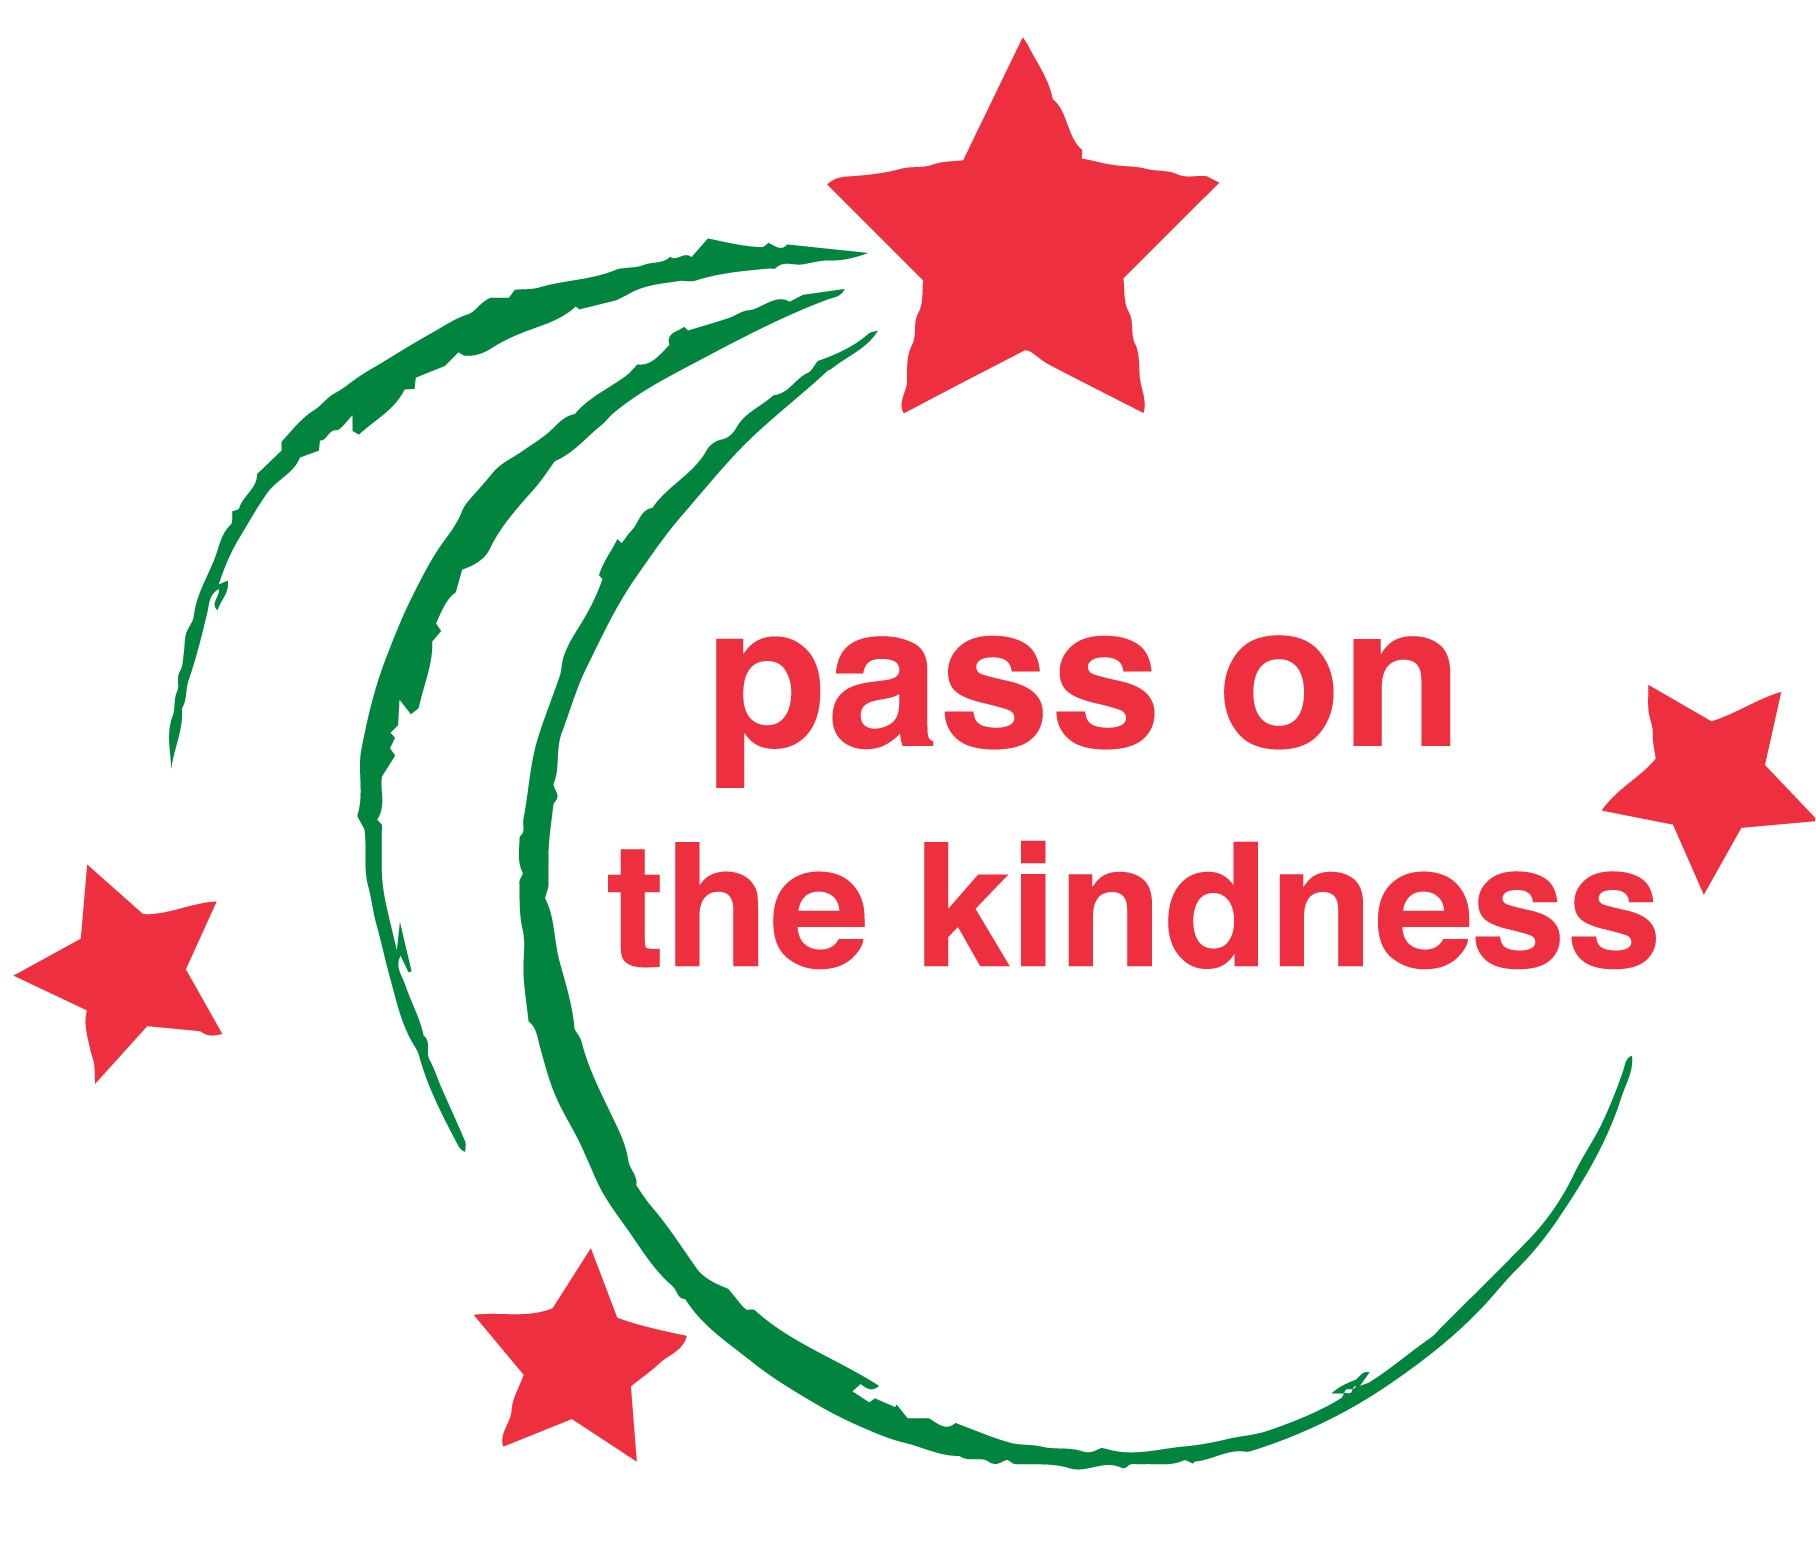 5ab7b3b066568 logo color pass on the kindness 01 copy